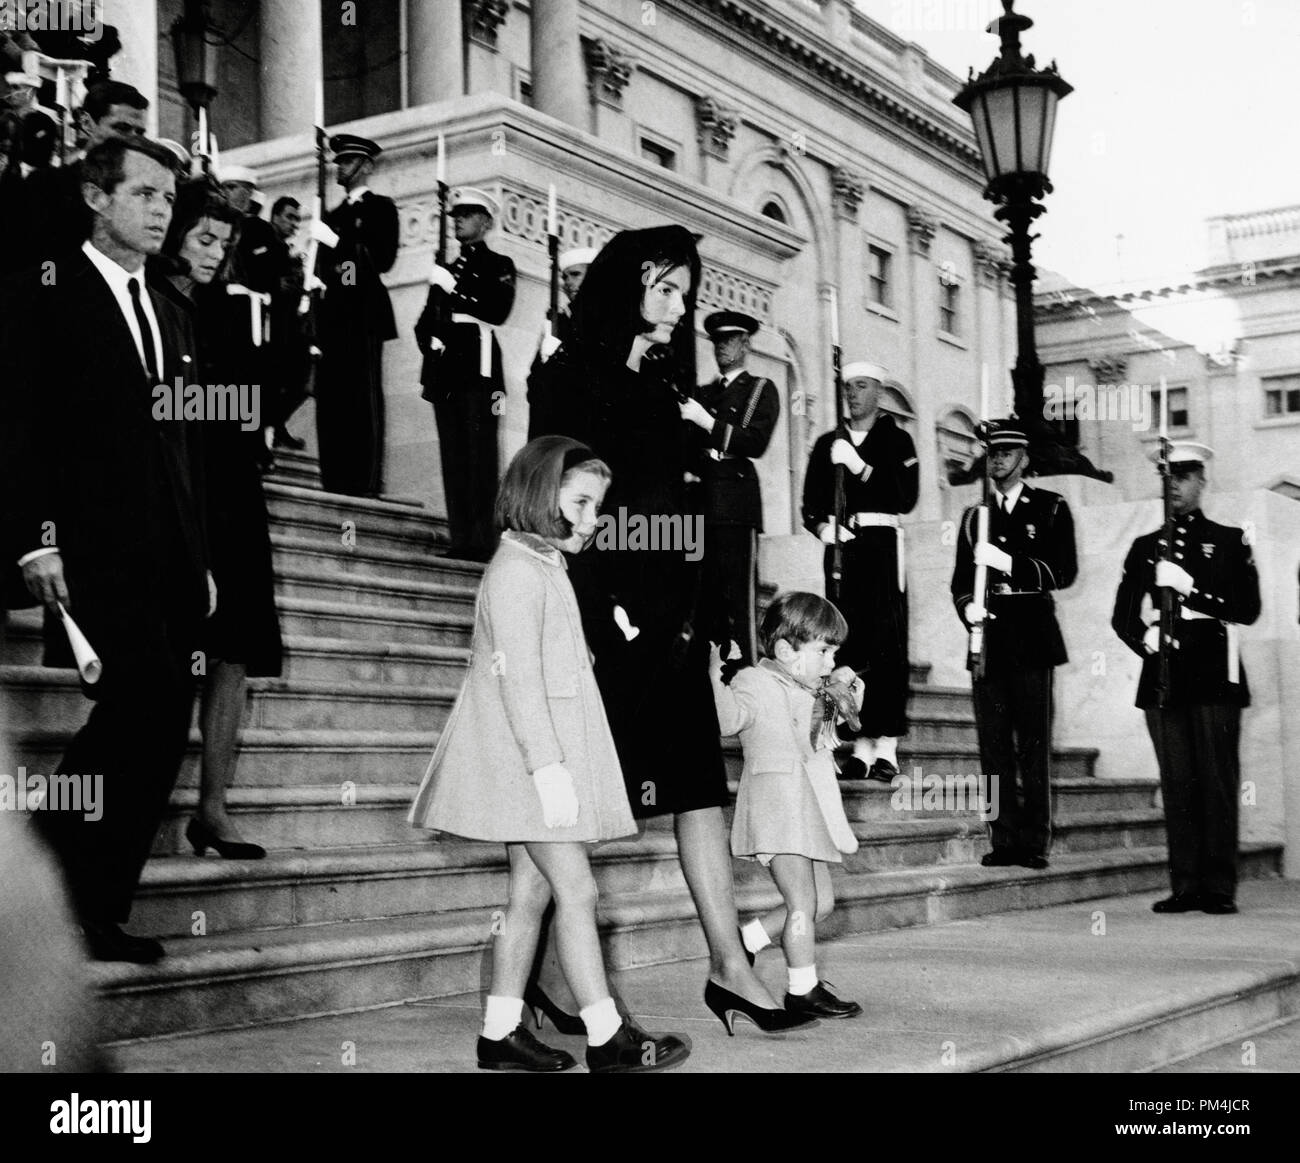 The coffin of assassinated American President John F. Kennedy (off camera)  is carried down the steps at St Matthew's Cathedral, Washington, after the requiem mass. Following the coffin is his widow Jacqueline Bouvier Kennedy, their children Caroline and John Jr. and Robert Kennedy, November 25, 1963   File Reference # 1003_670THA - Stock Image